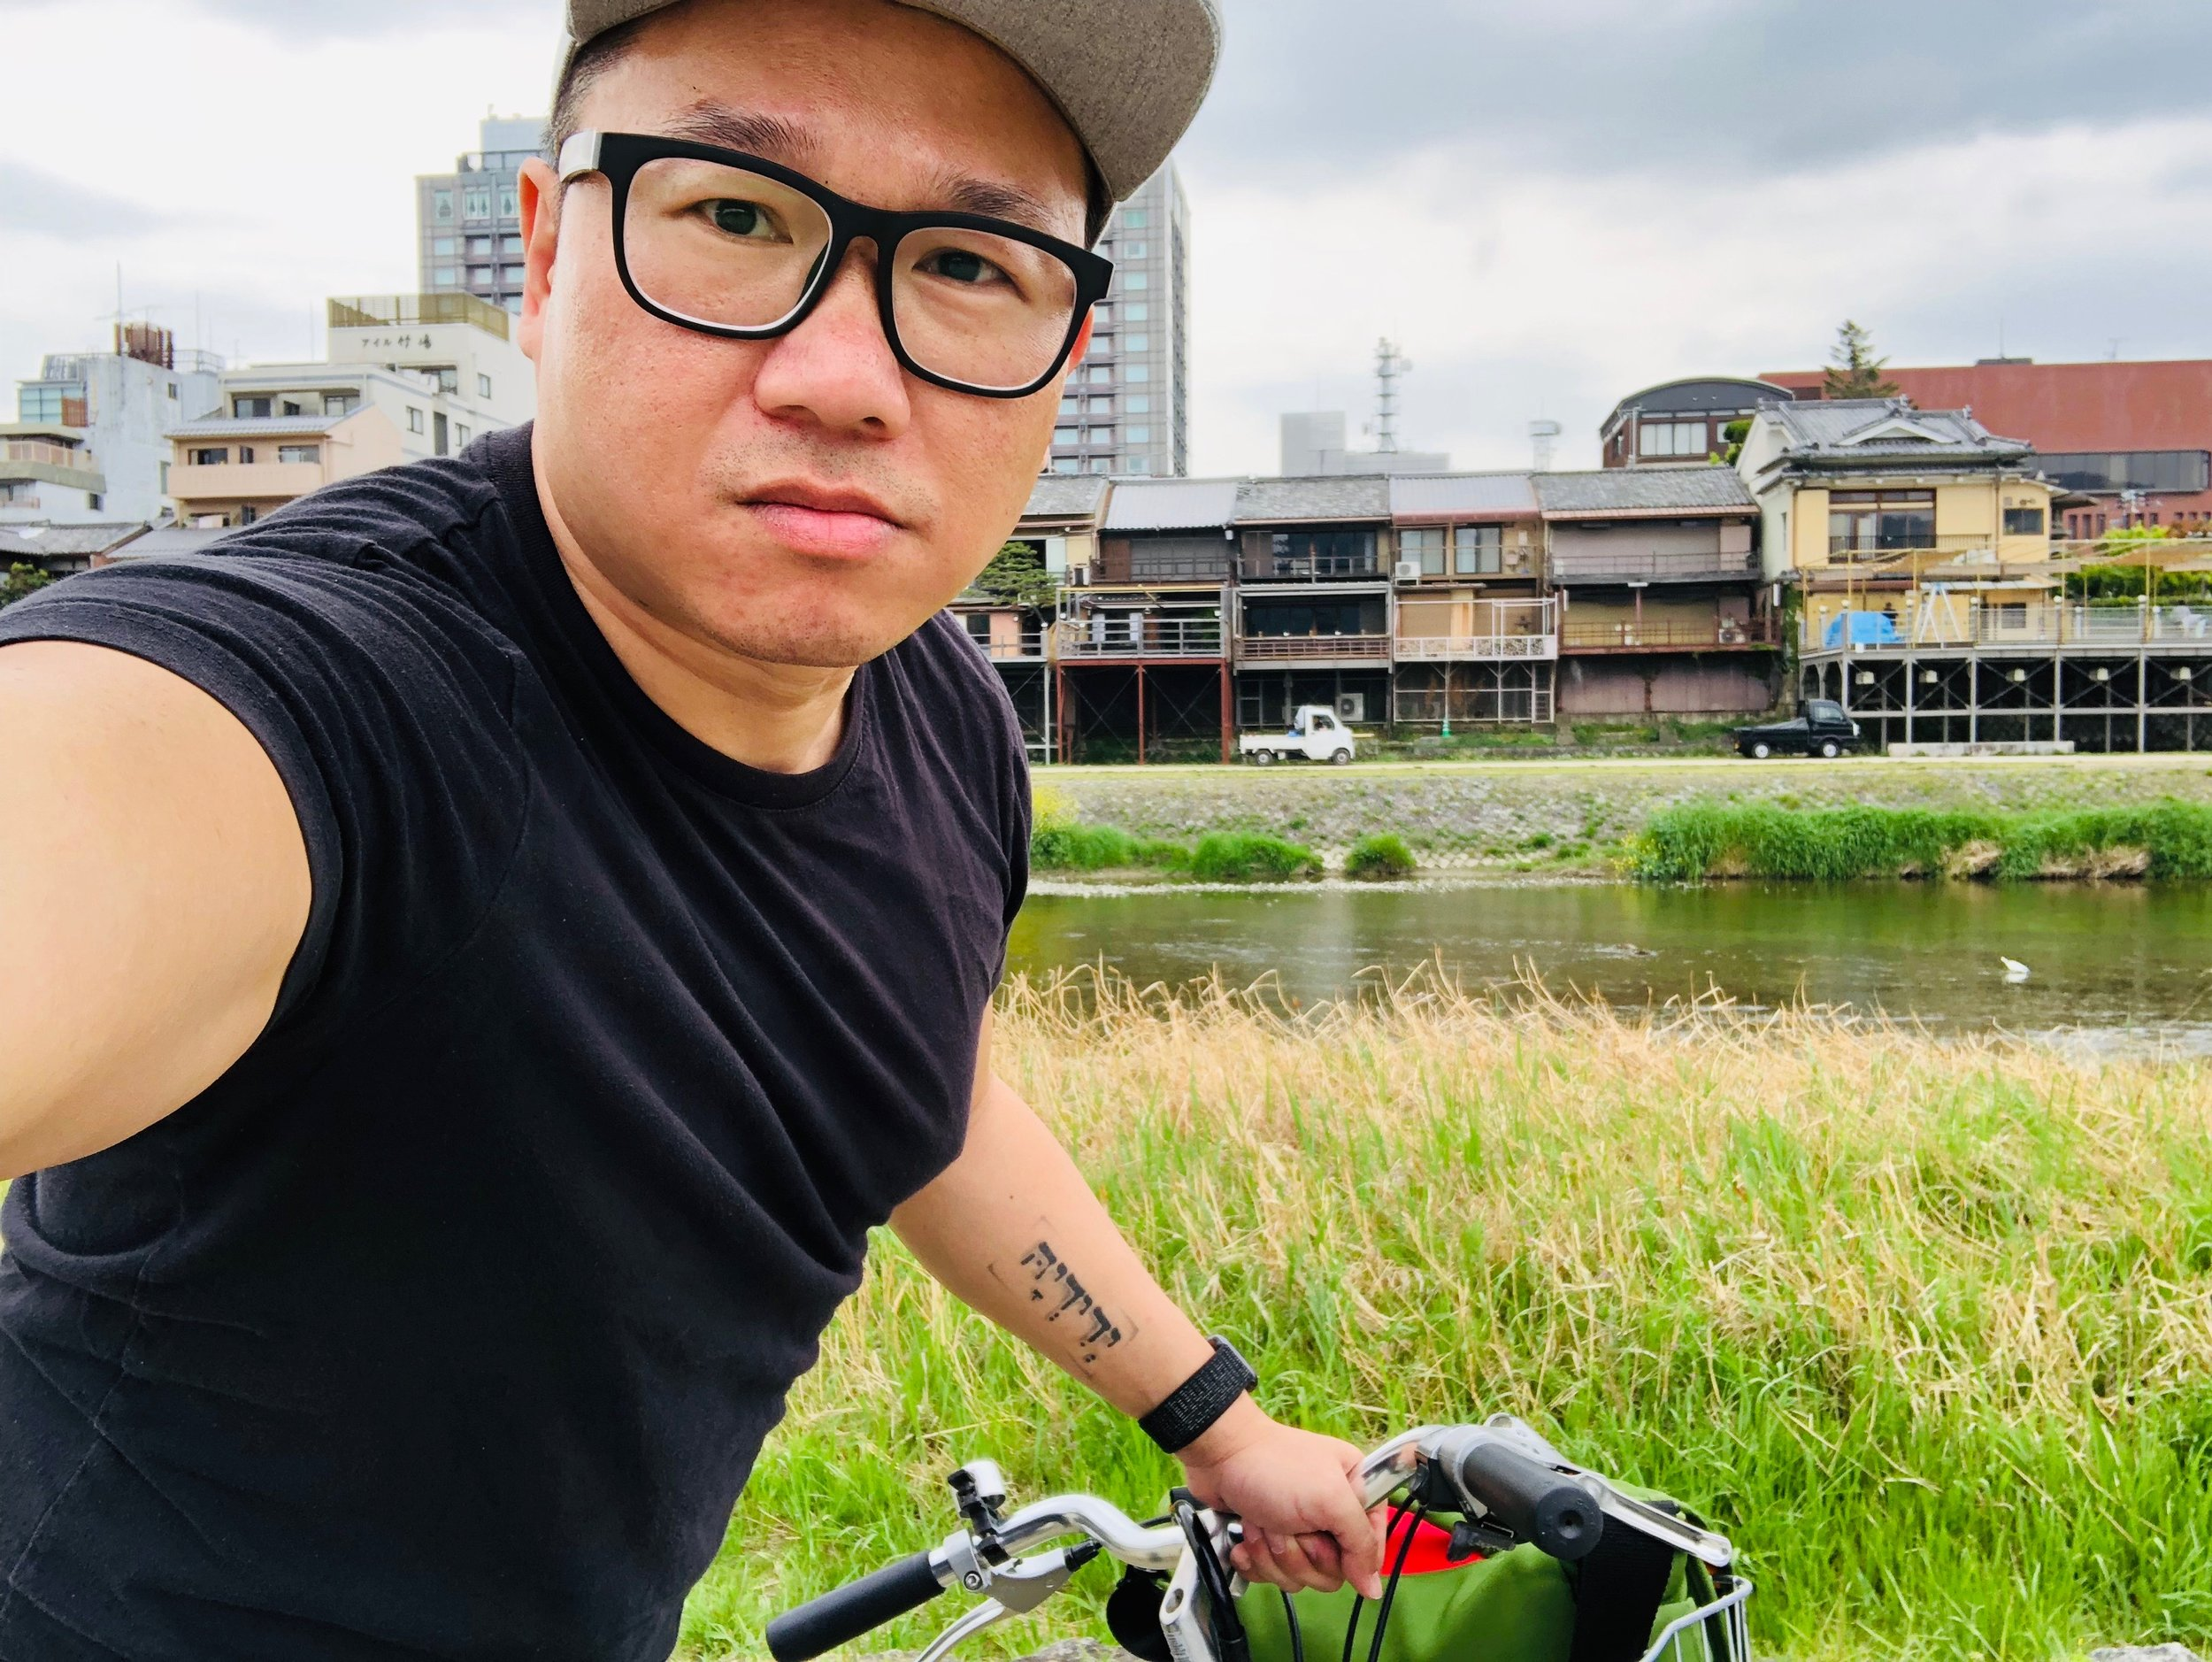 Cycling along the river in Kyoto.